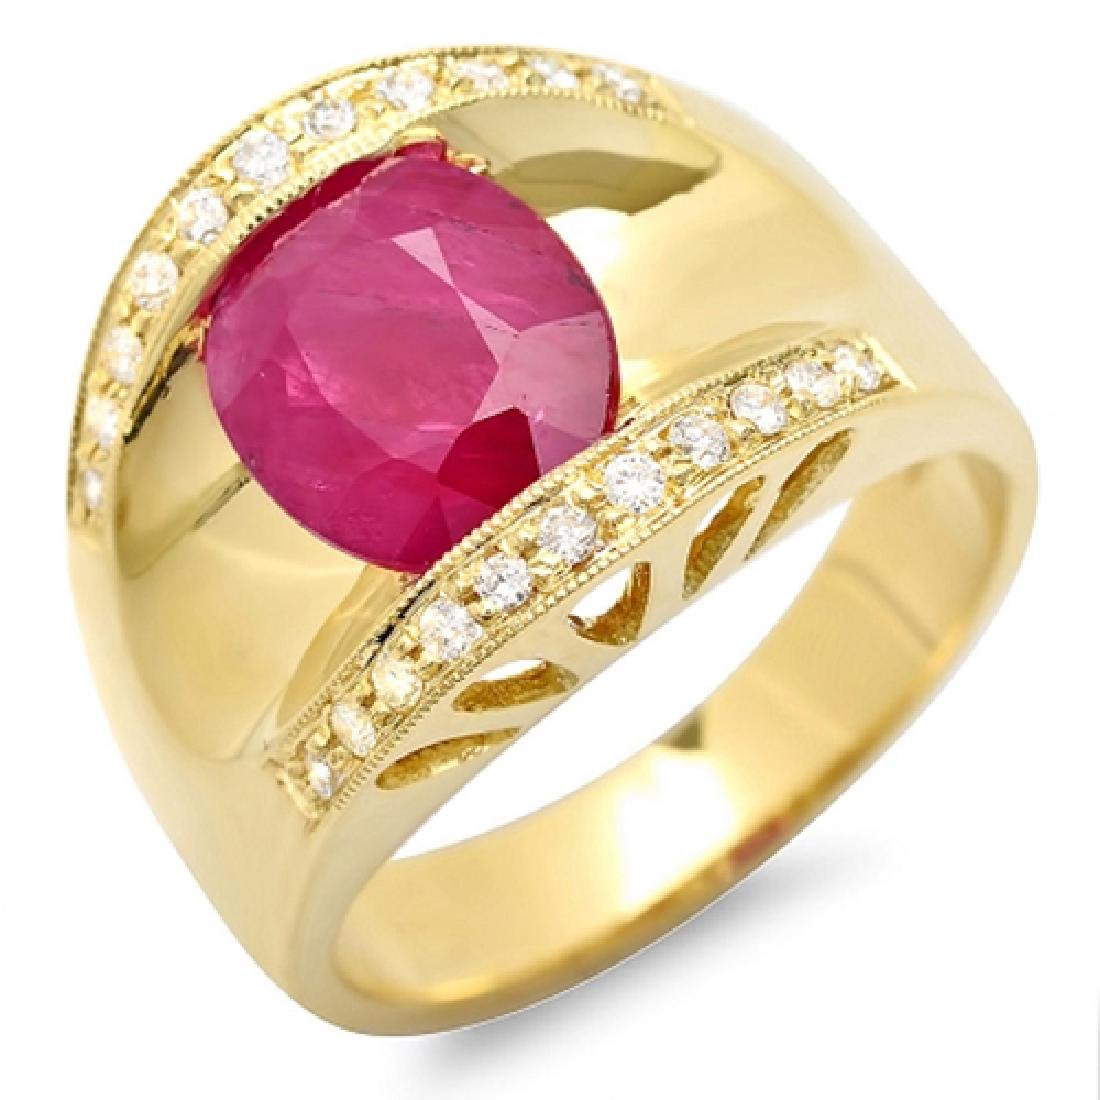 2.87 Carat Natural Ruby 18K Solid Yellow Gold Diamond